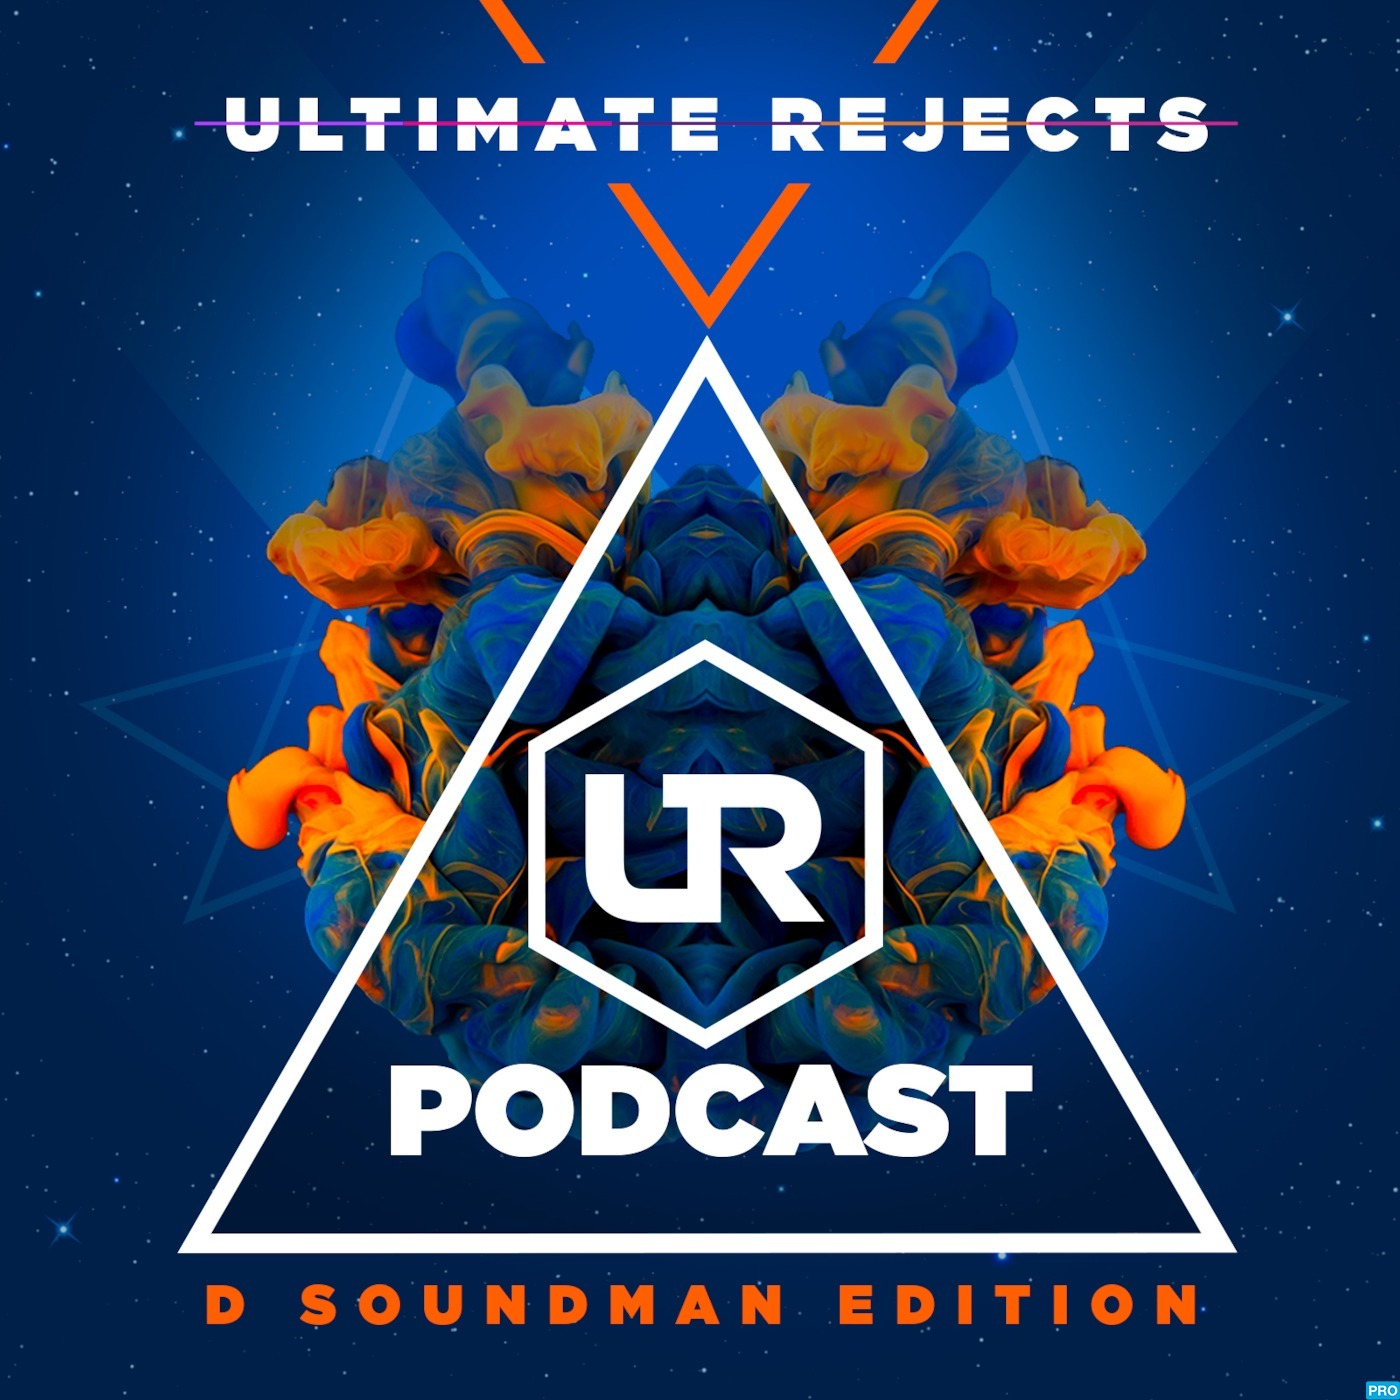 Ultimate Rejects' Podcast